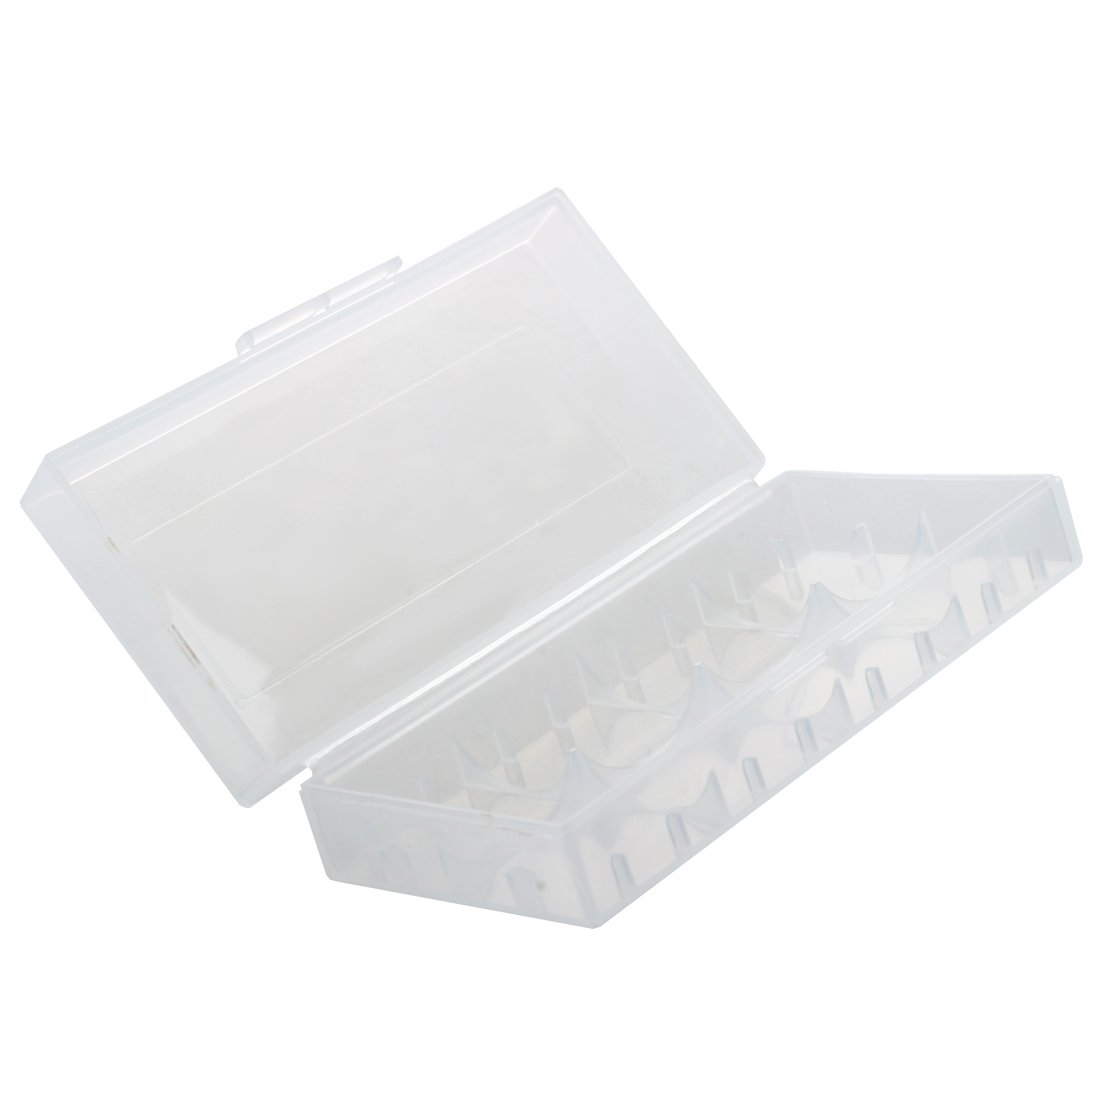 SODIAL (R) Battery Case Box Holder Storage for 16340 / CR123A / 18650 / Button Cell